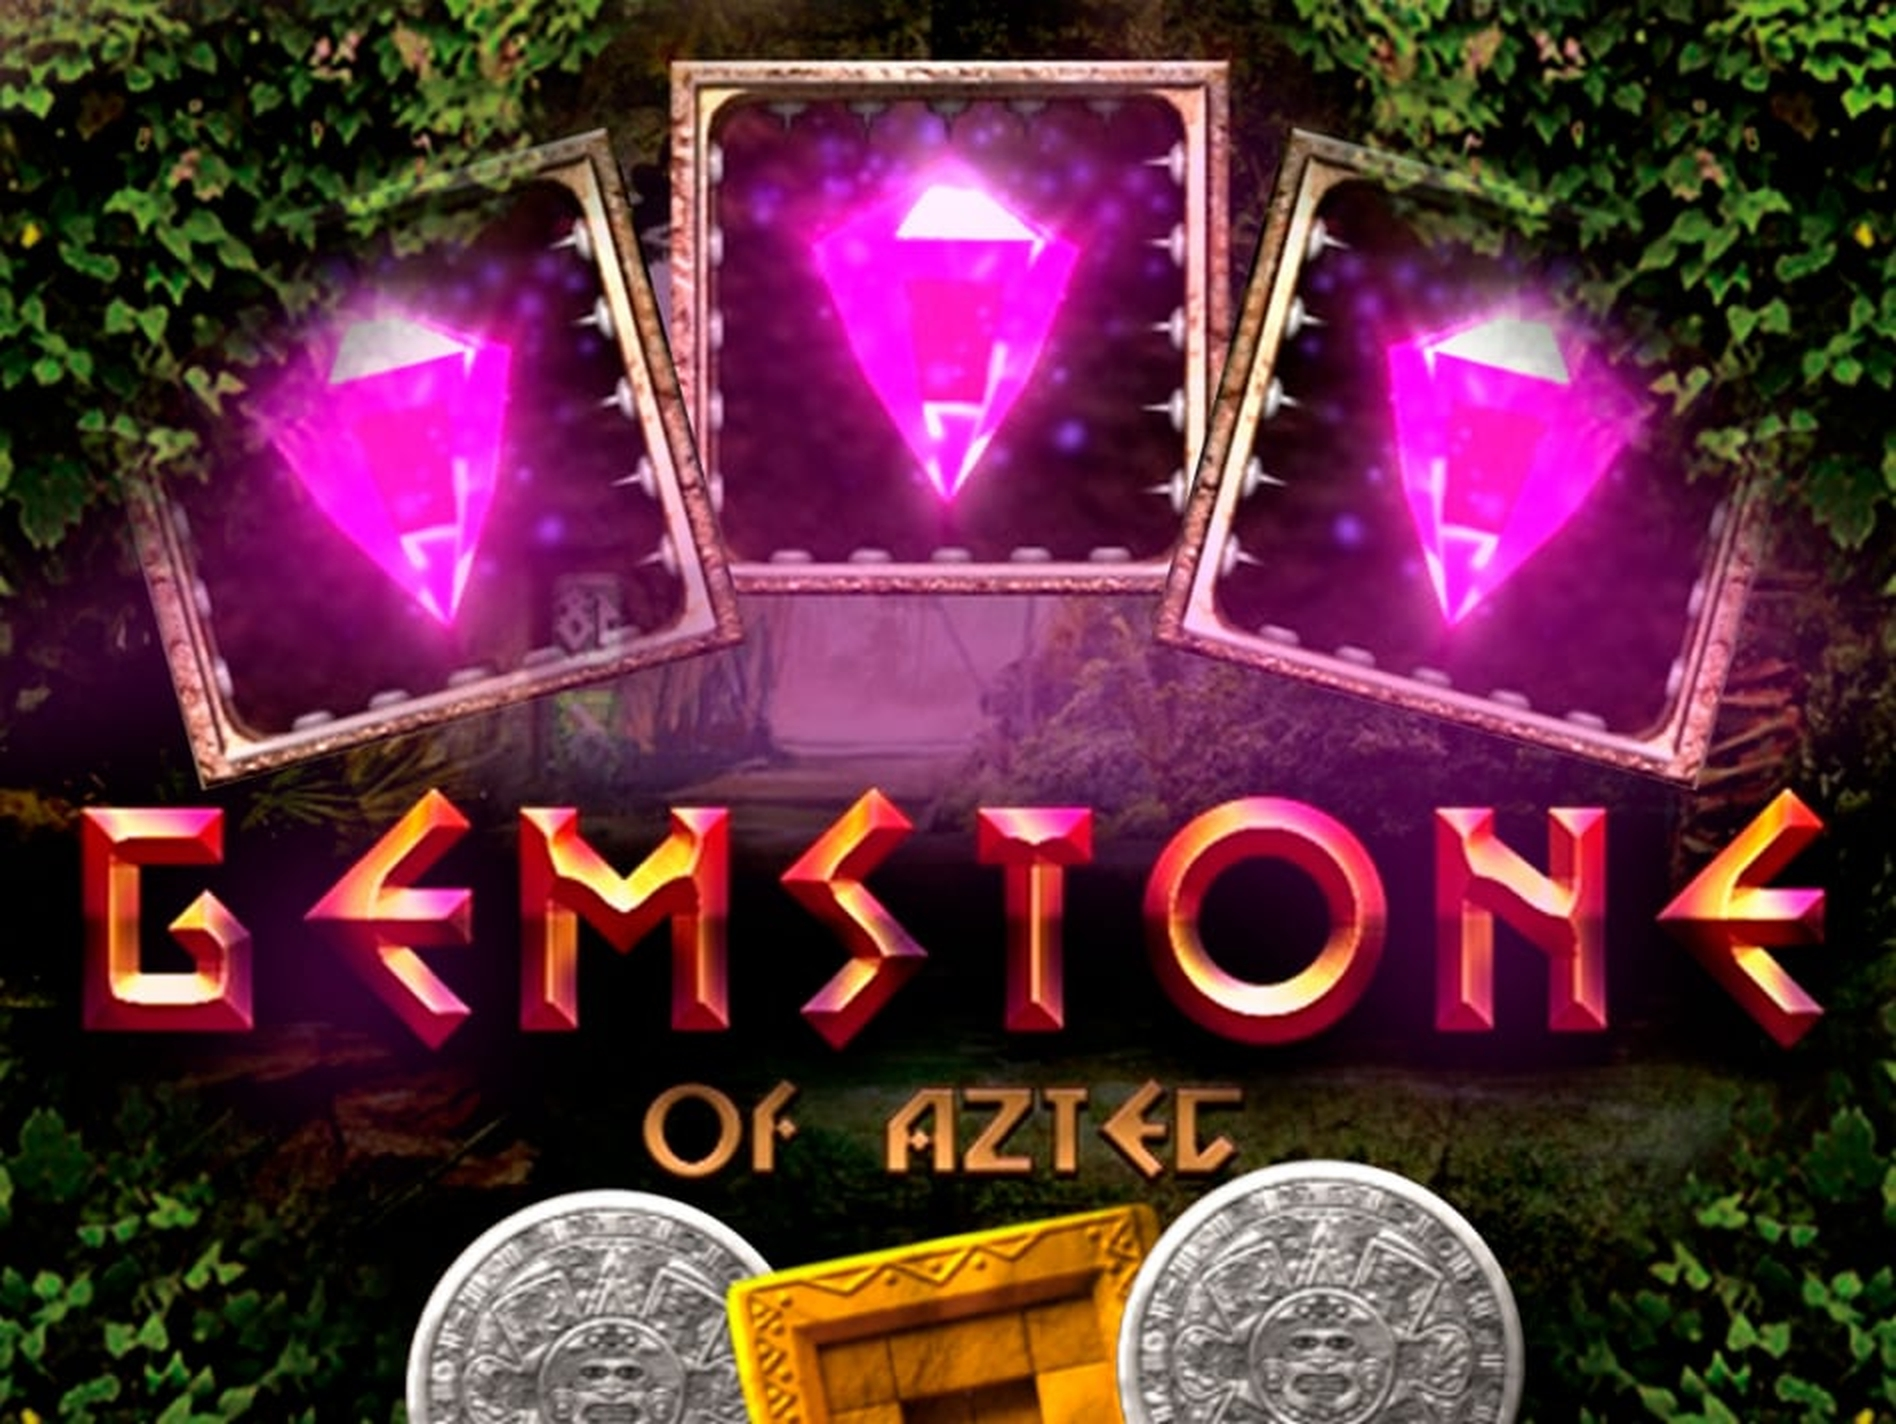 The Gemstone Of Aztec Online Slot Demo Game by Fugaso